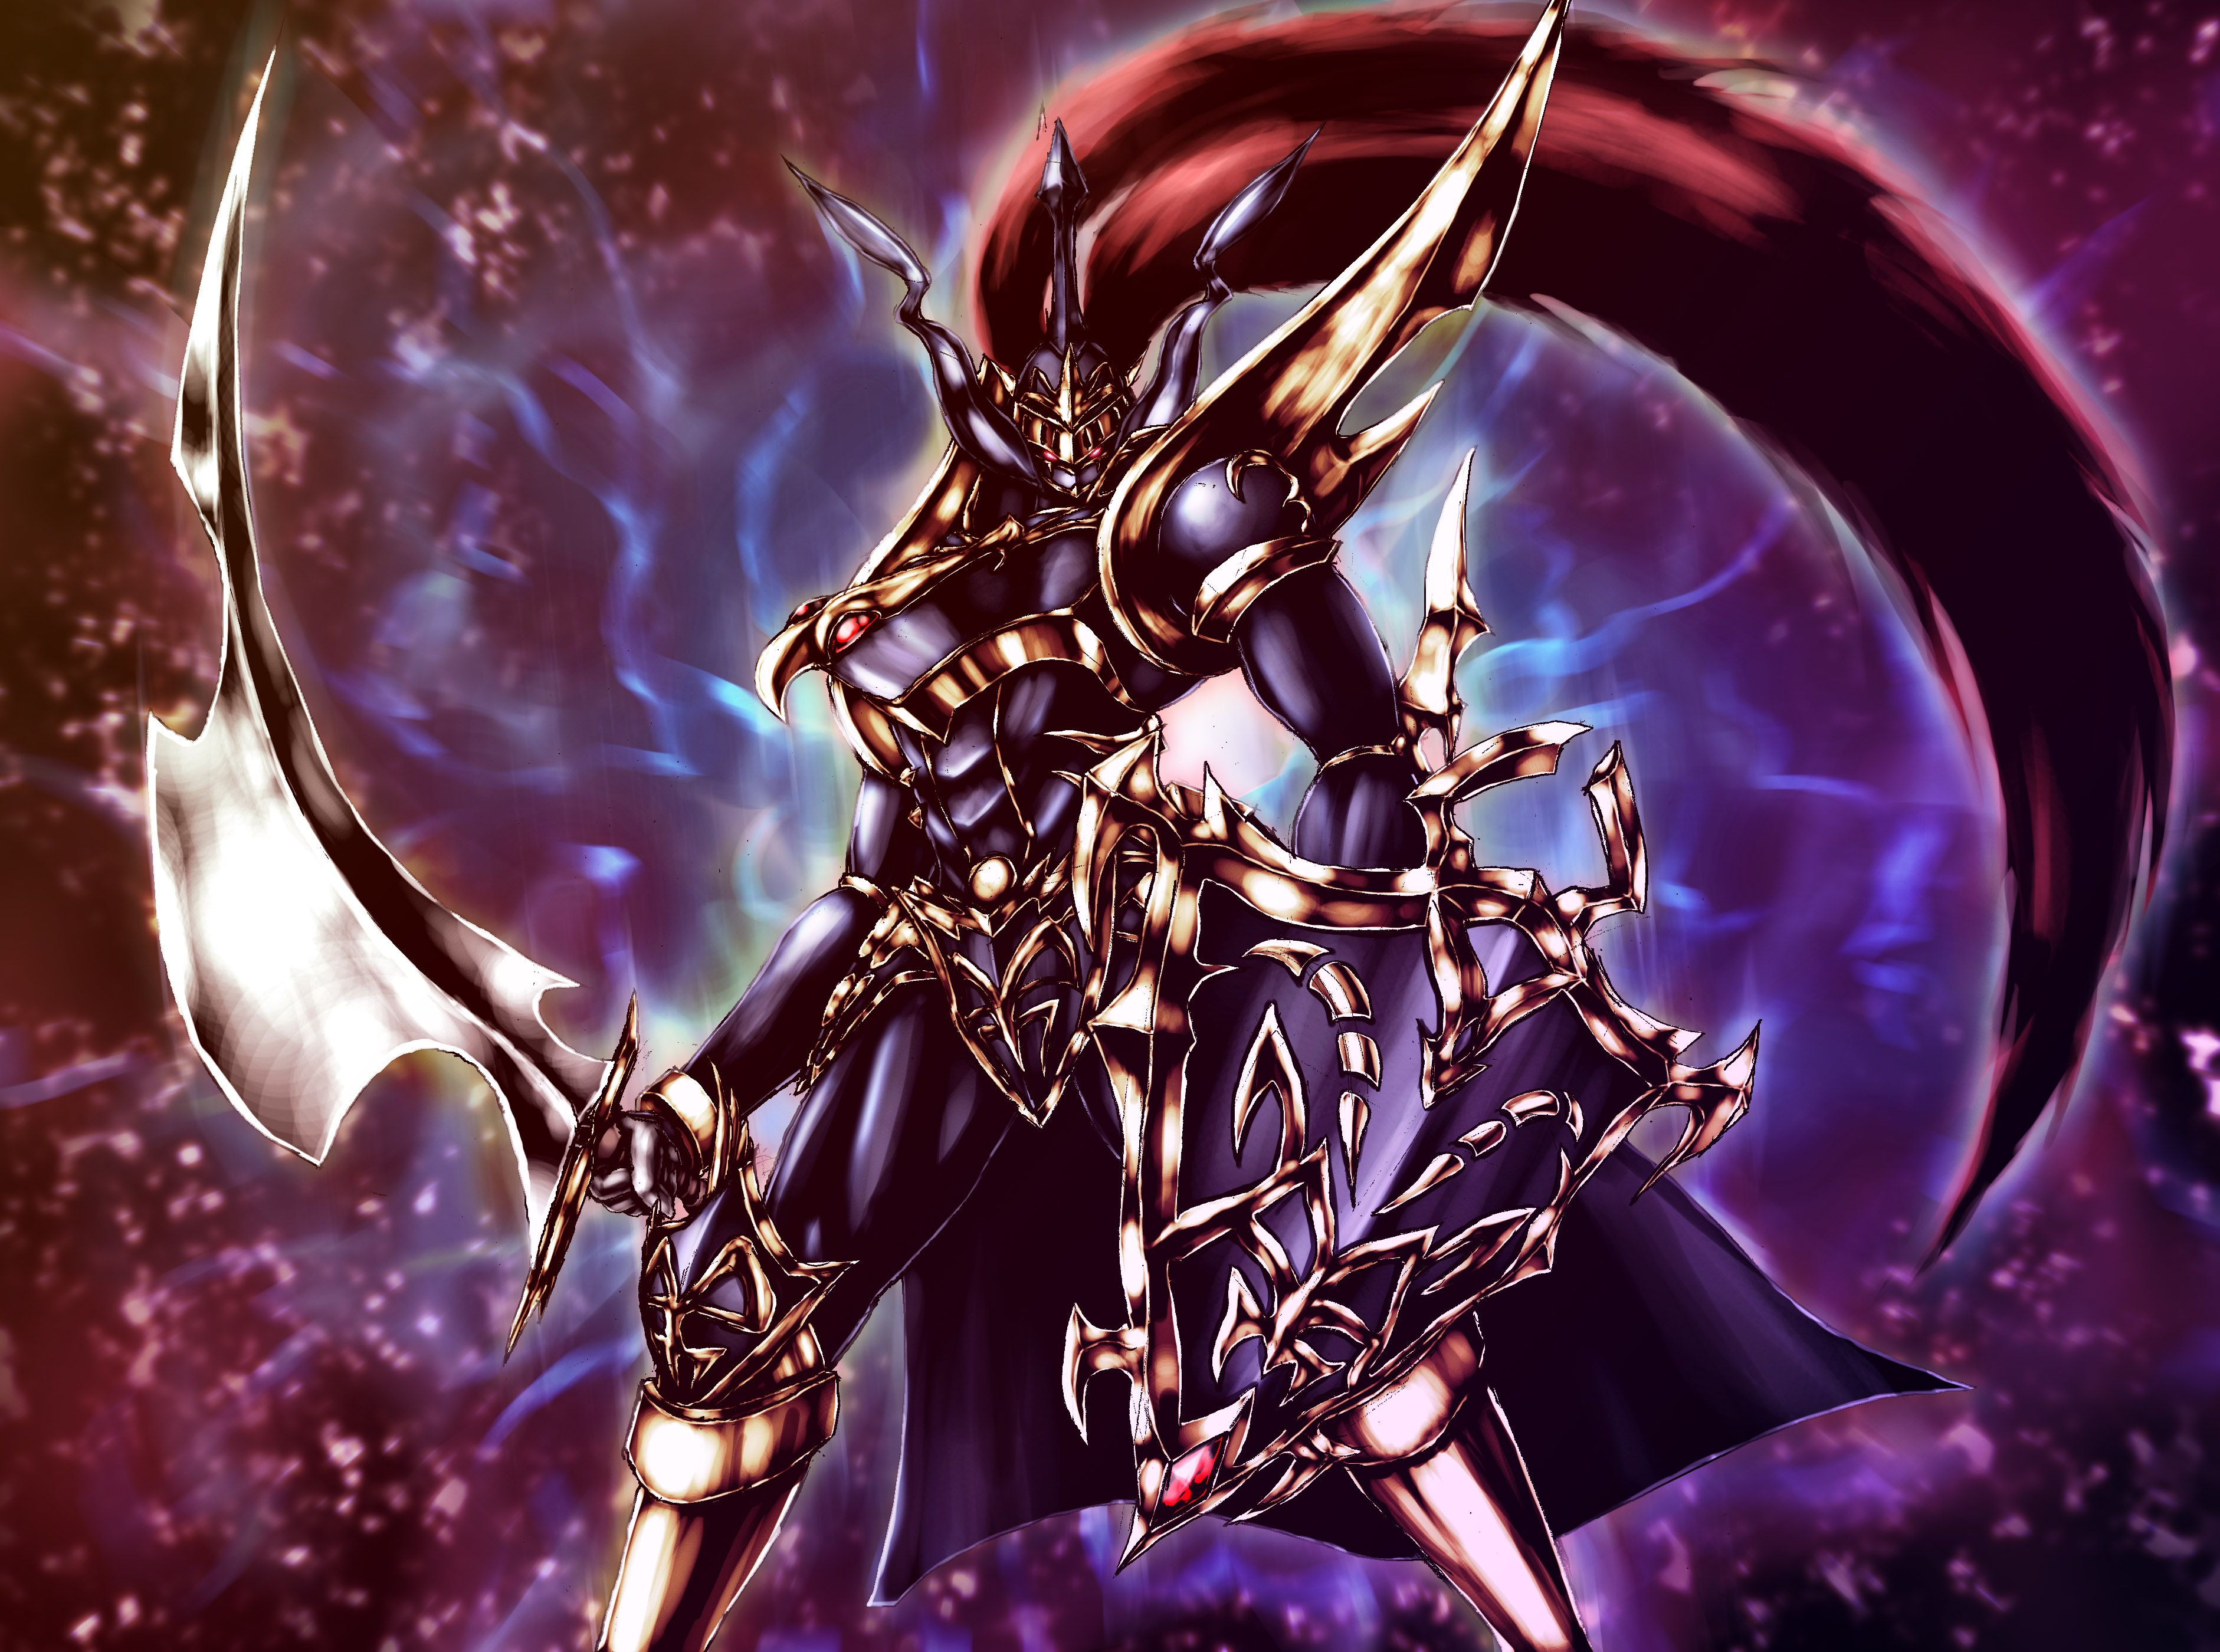 Anime Dragon Armor Google Search Yugioh Yugioh Monsters Dragon Armor Add a new set of armor and weapons (there are enchanted and normal version of the weapon and shield) based on norse. anime dragon armor google search